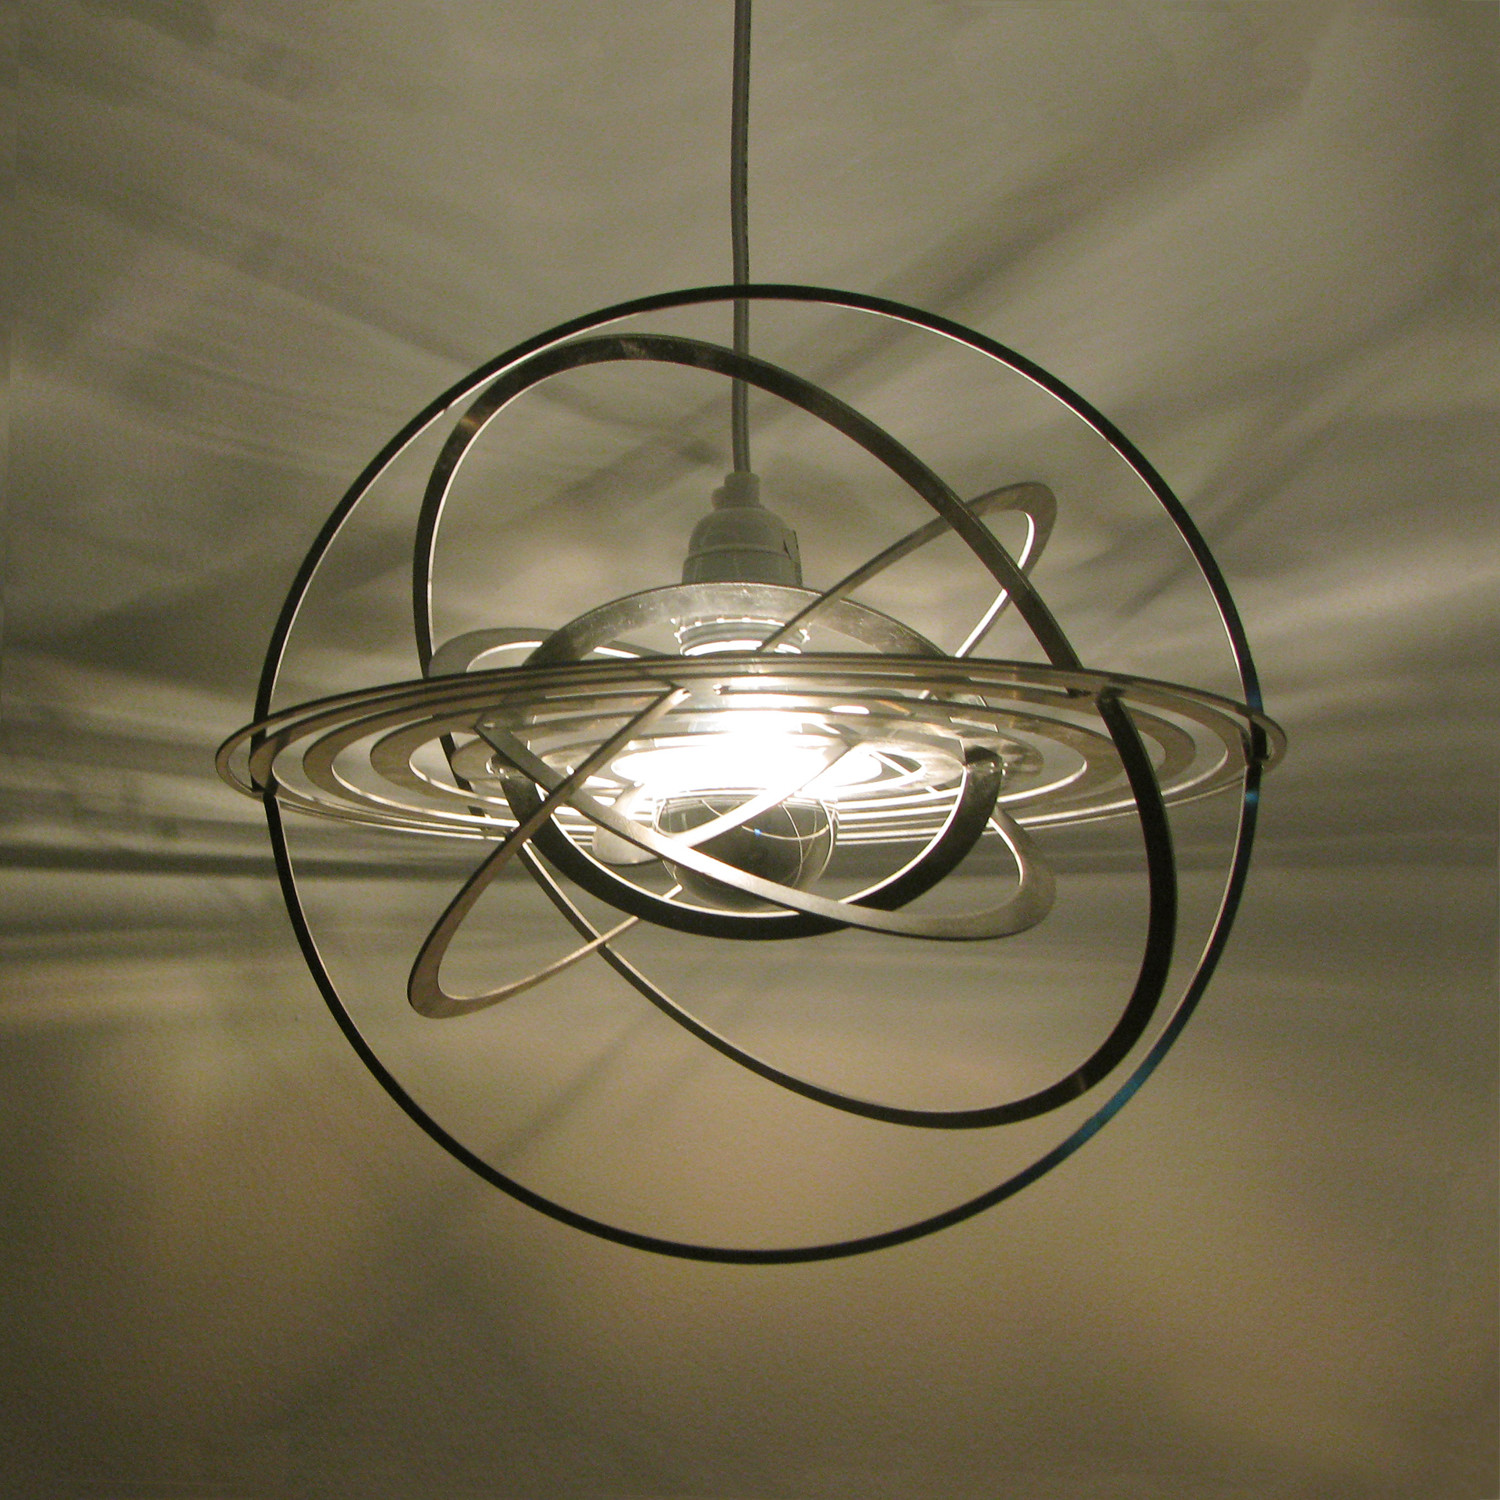 Orbit Pendant Lamp - Ixism - Touch of Modern